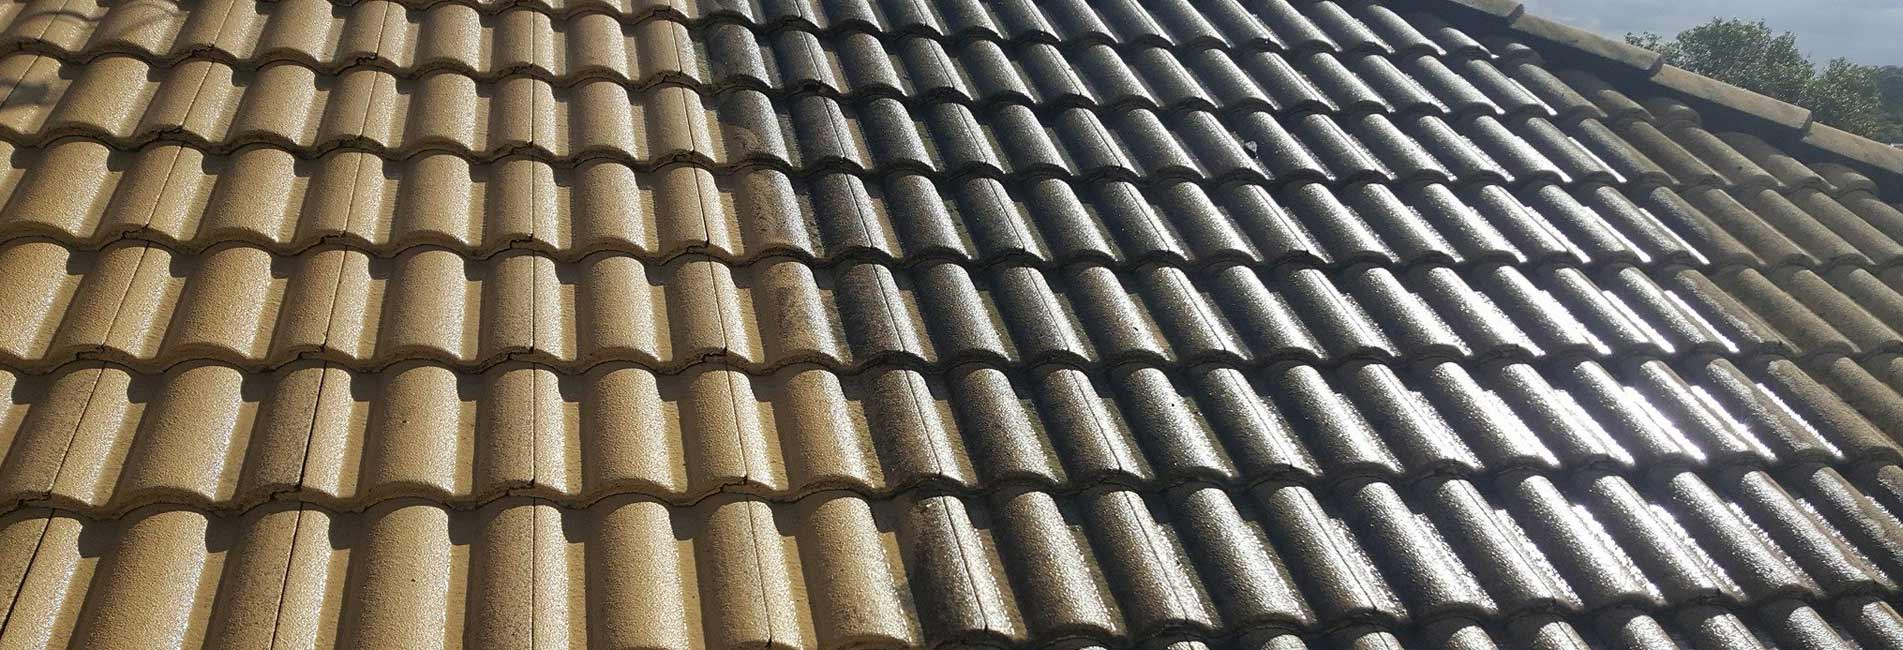 Terracotta Roofs North Lakes, Domestic Roof Tiling Redcliffe, Metal Roofing Albany Creek